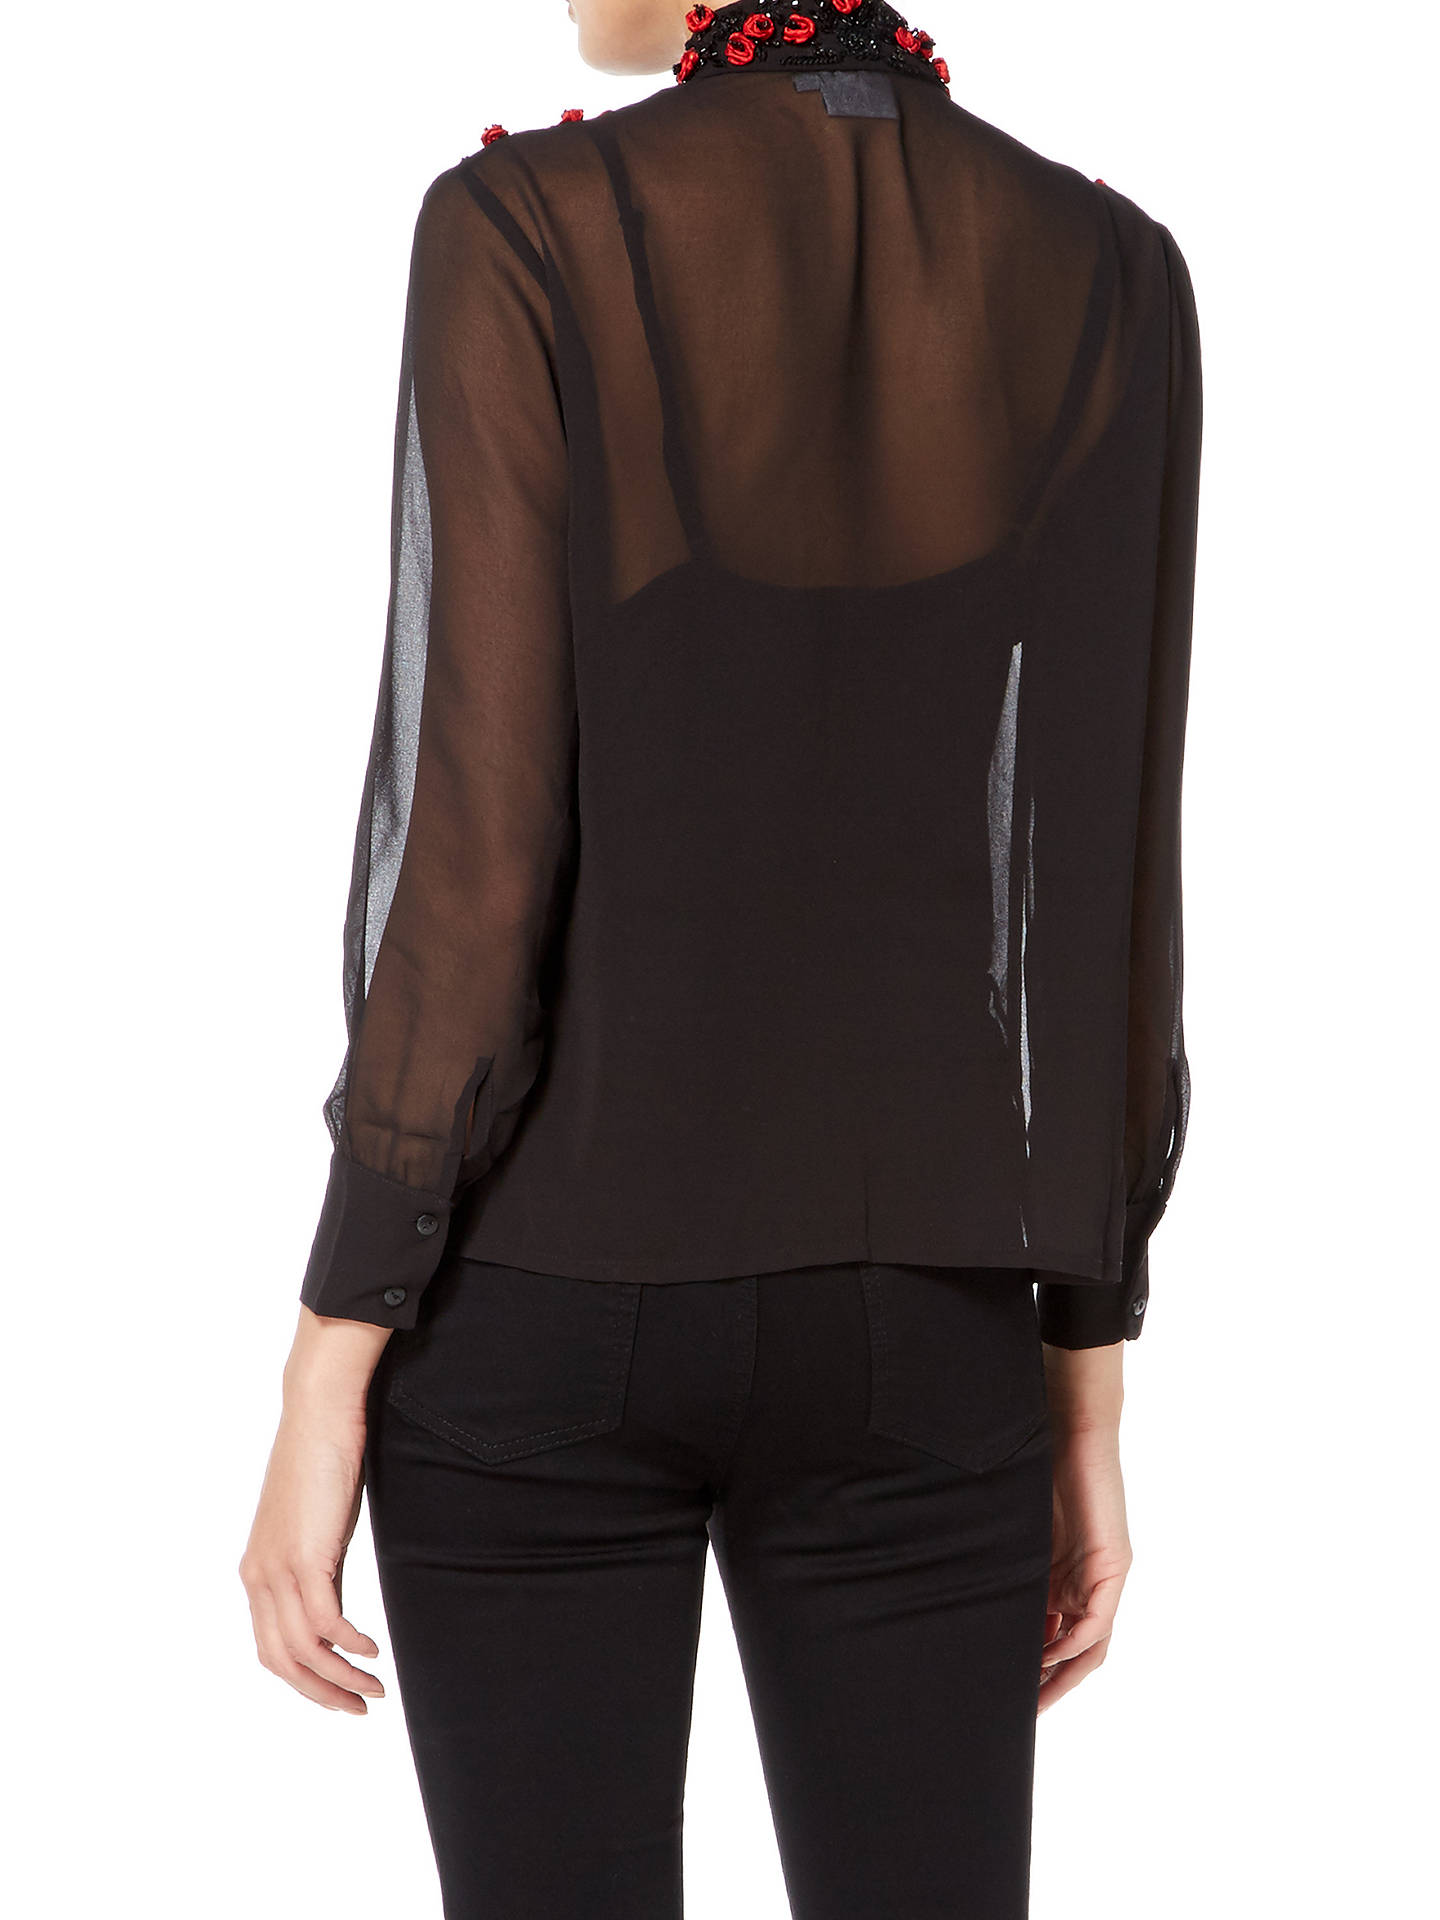 BuyRaishma Roses Shirt, Black, 8 Online at johnlewis.com